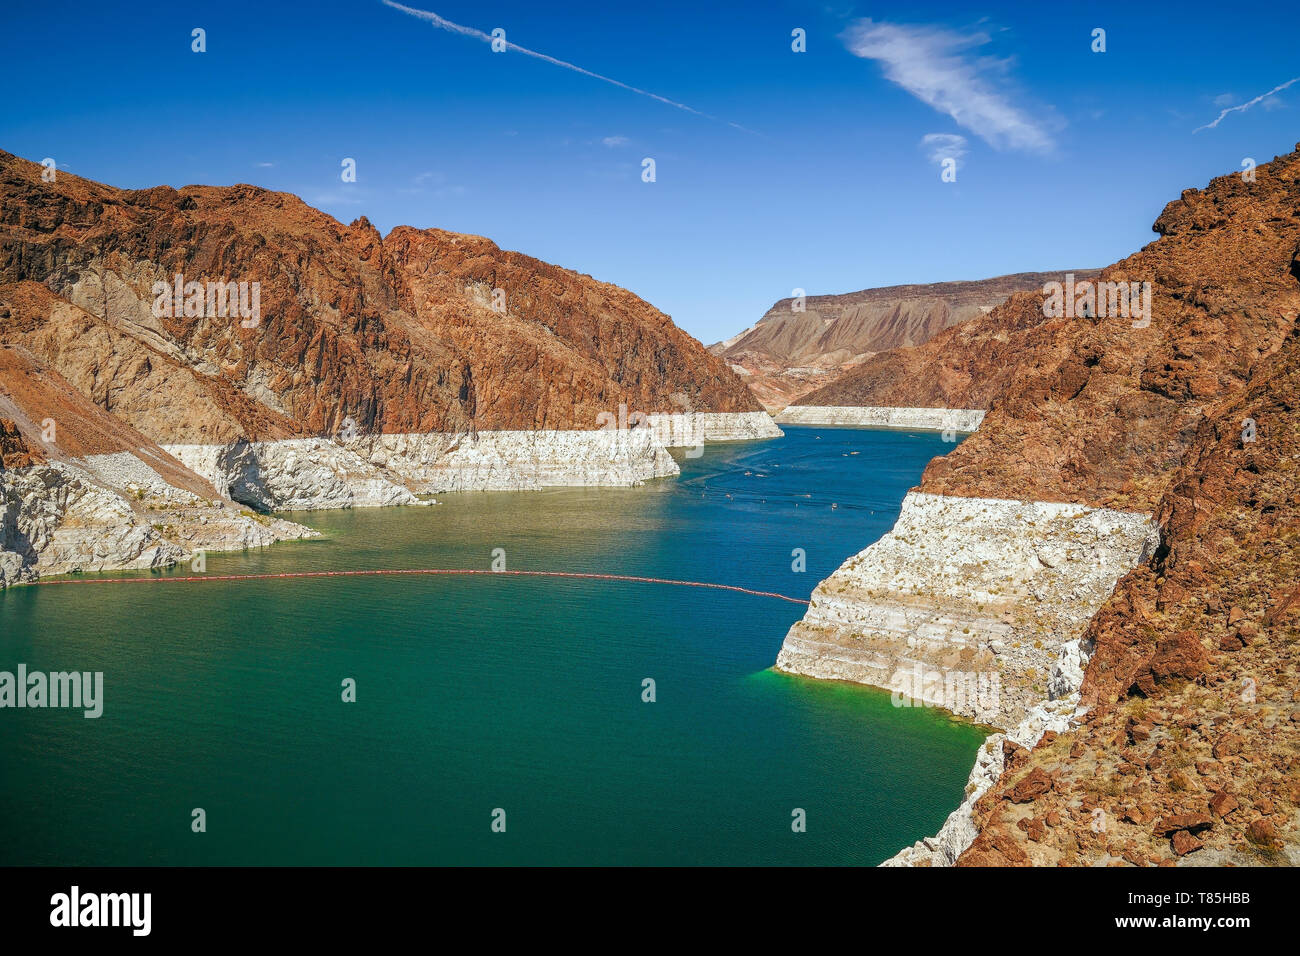 Low water in Lake Mead in autumn. View from the Arizona side. USA Stock Photo